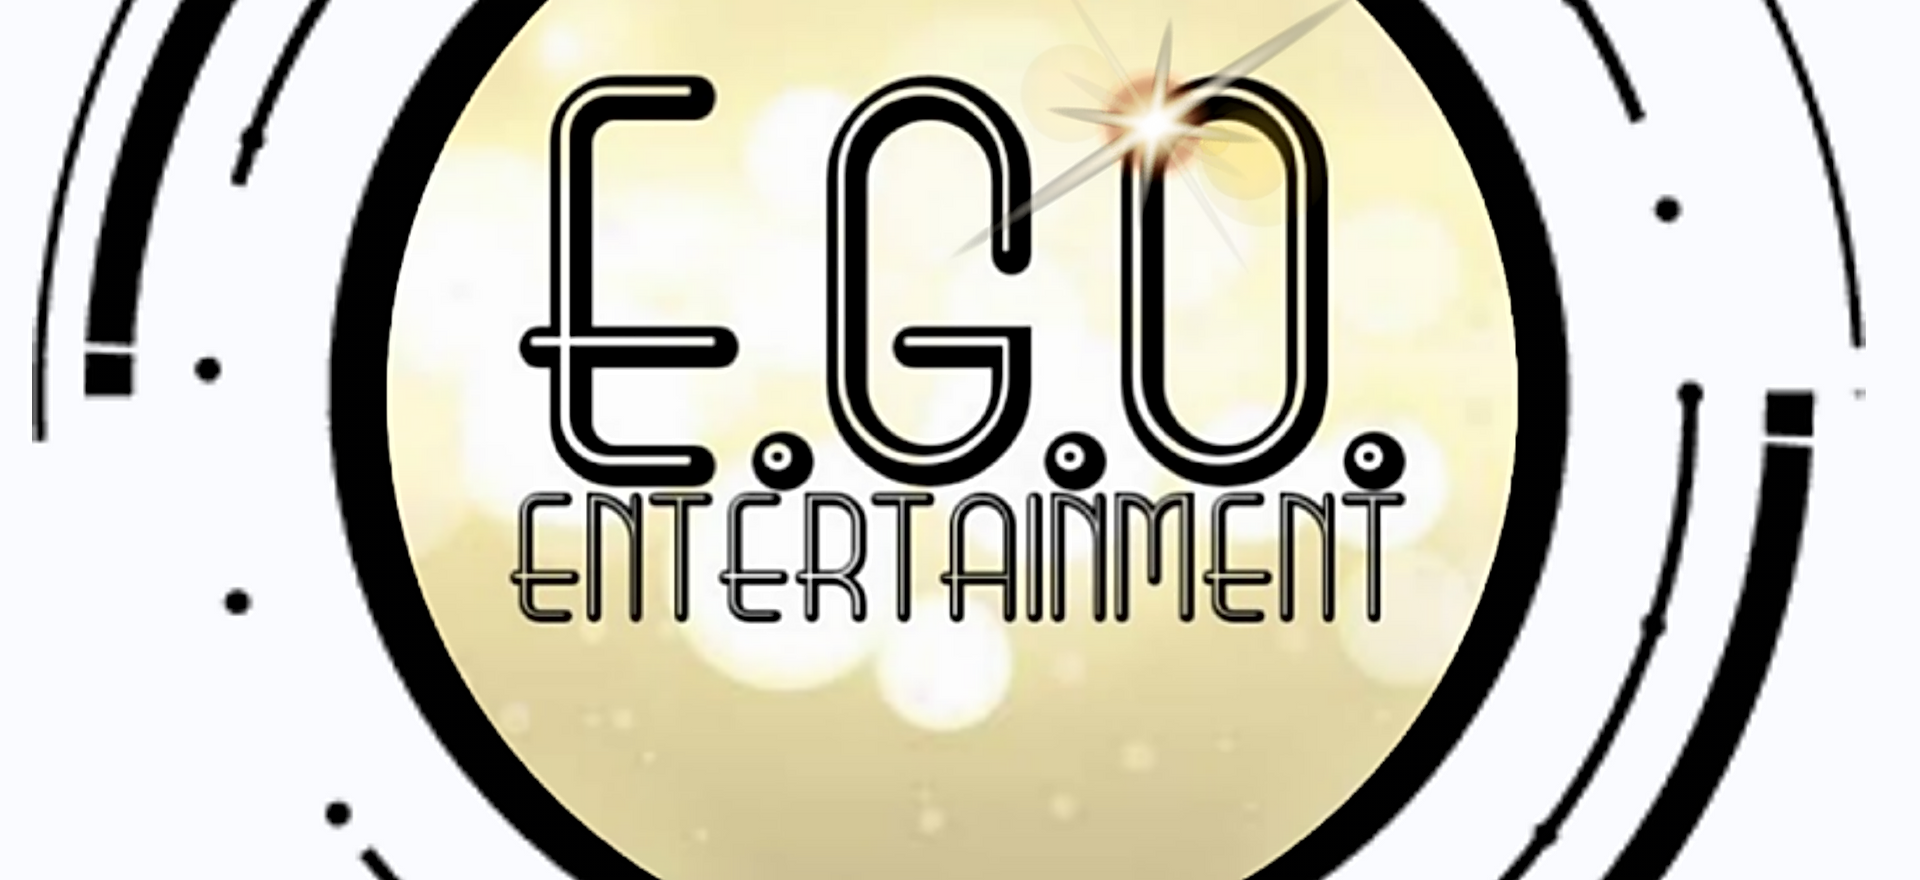 E.G.O. Entertainment Network LLC